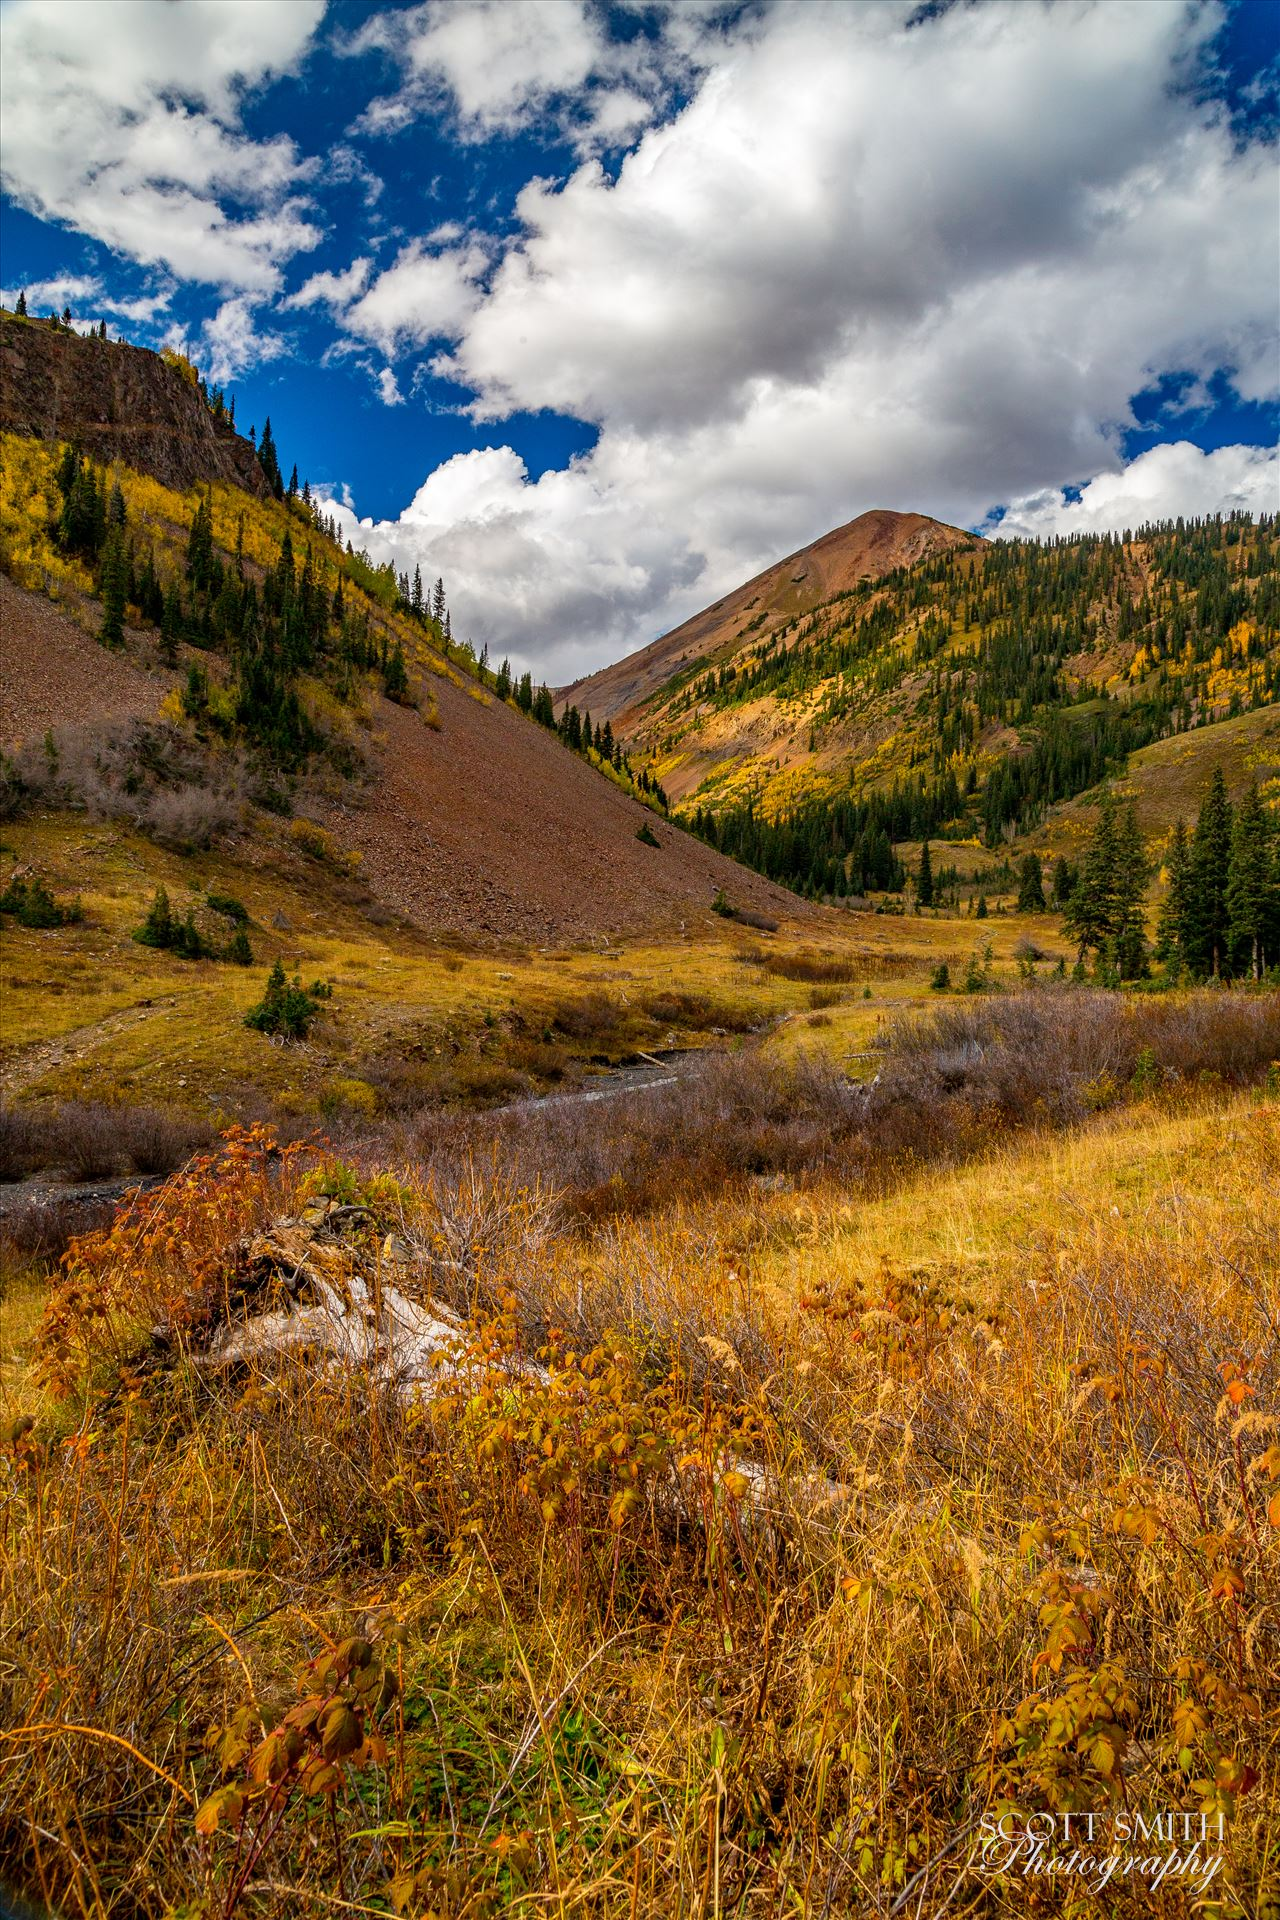 Washington Gulch Nestled in Washington Gulch, a small stream works between the mountains. by Scott Smith Photos